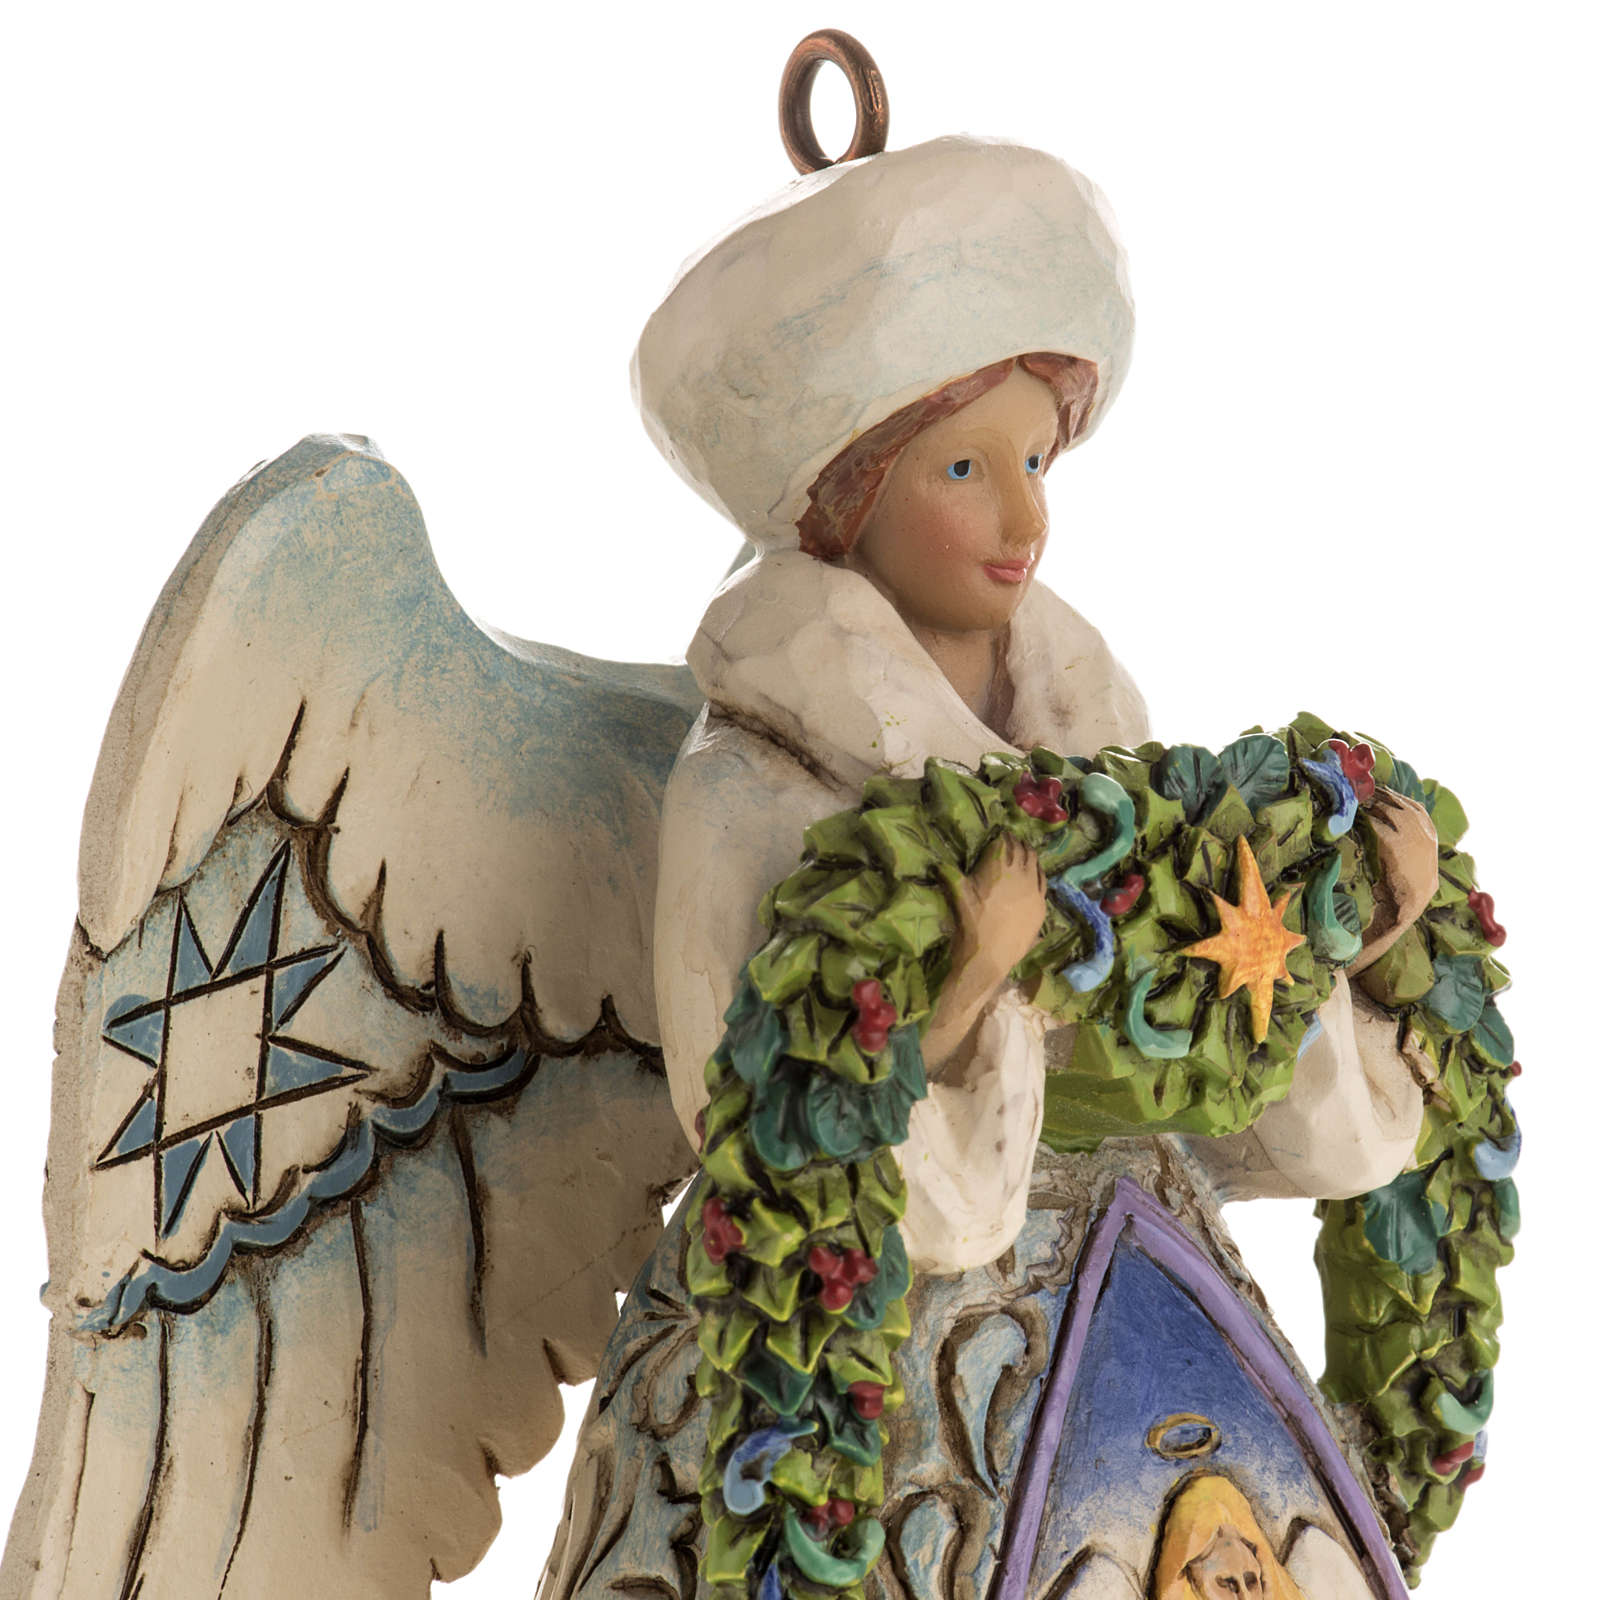 Angelo di Natale Jim Shore (Winter Angel Nativity) 4